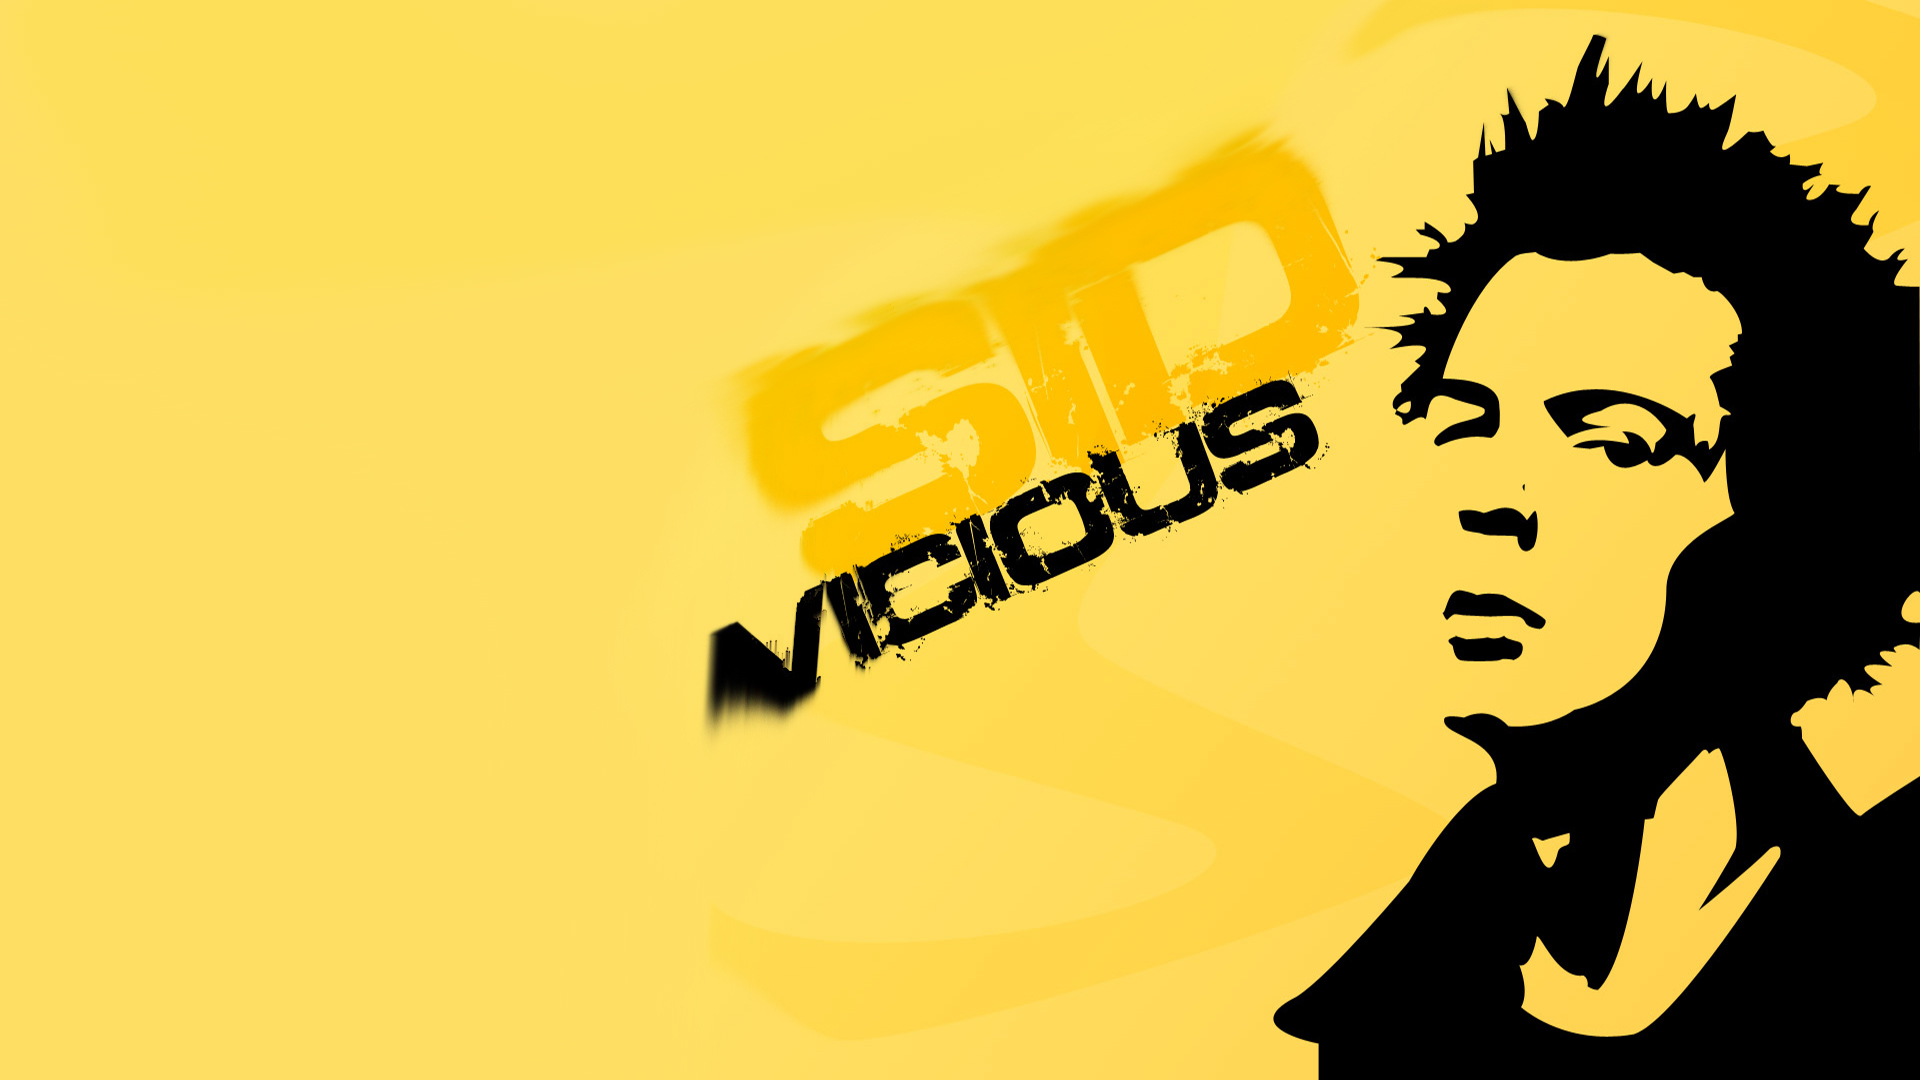 Sex Pistols Sid Vicious HD Wallpaper